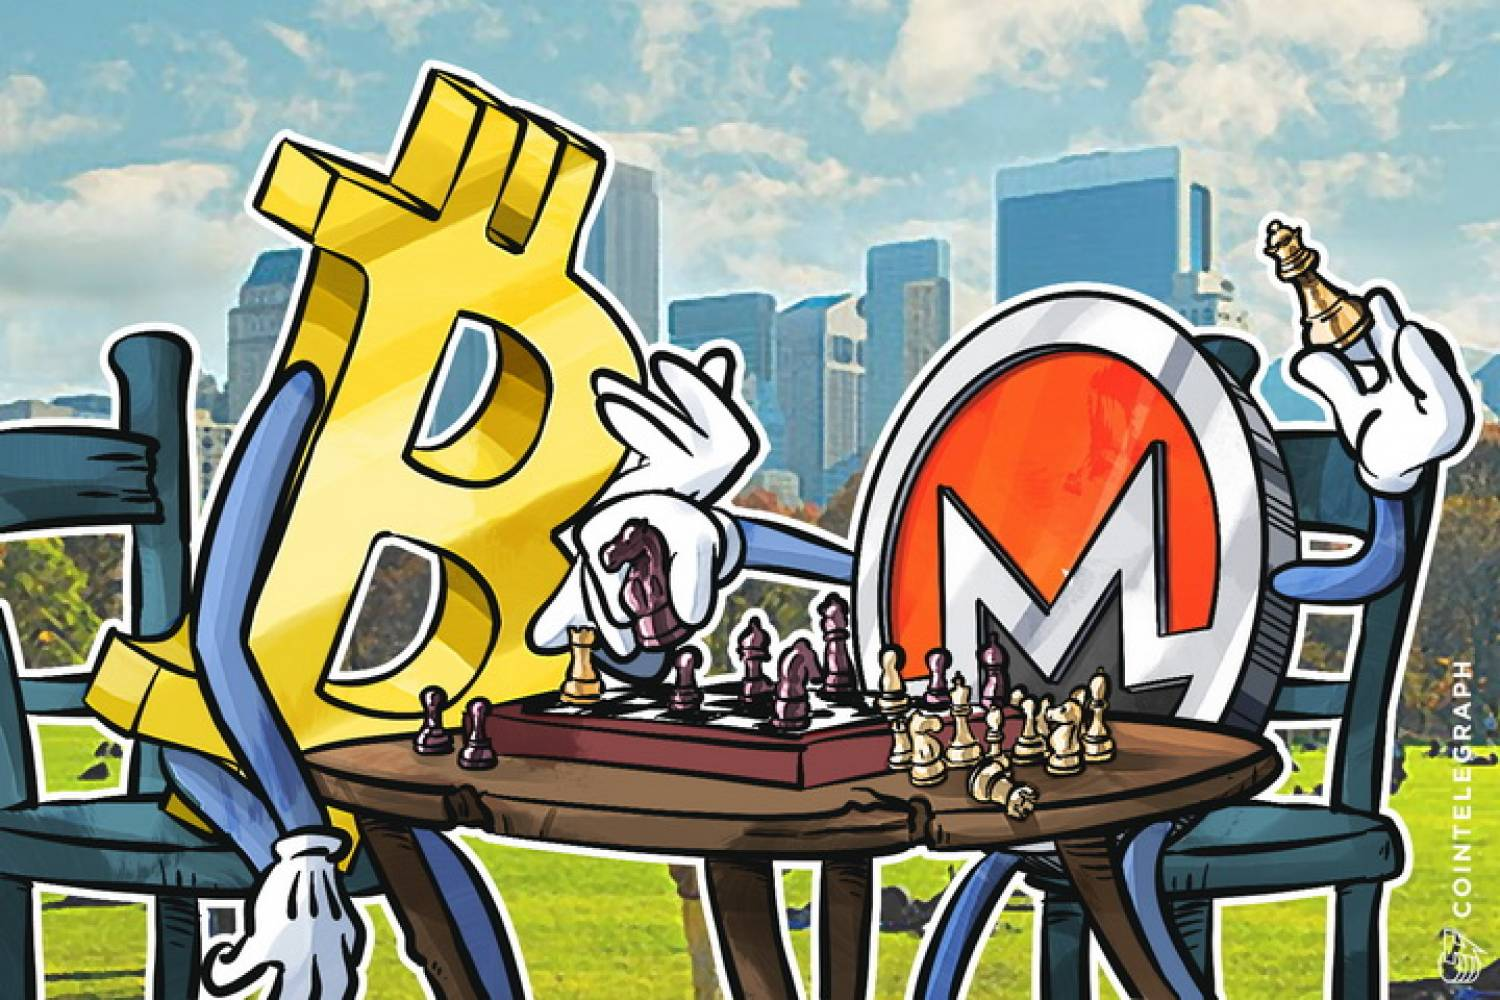 Monero and Bitcoin playing chess